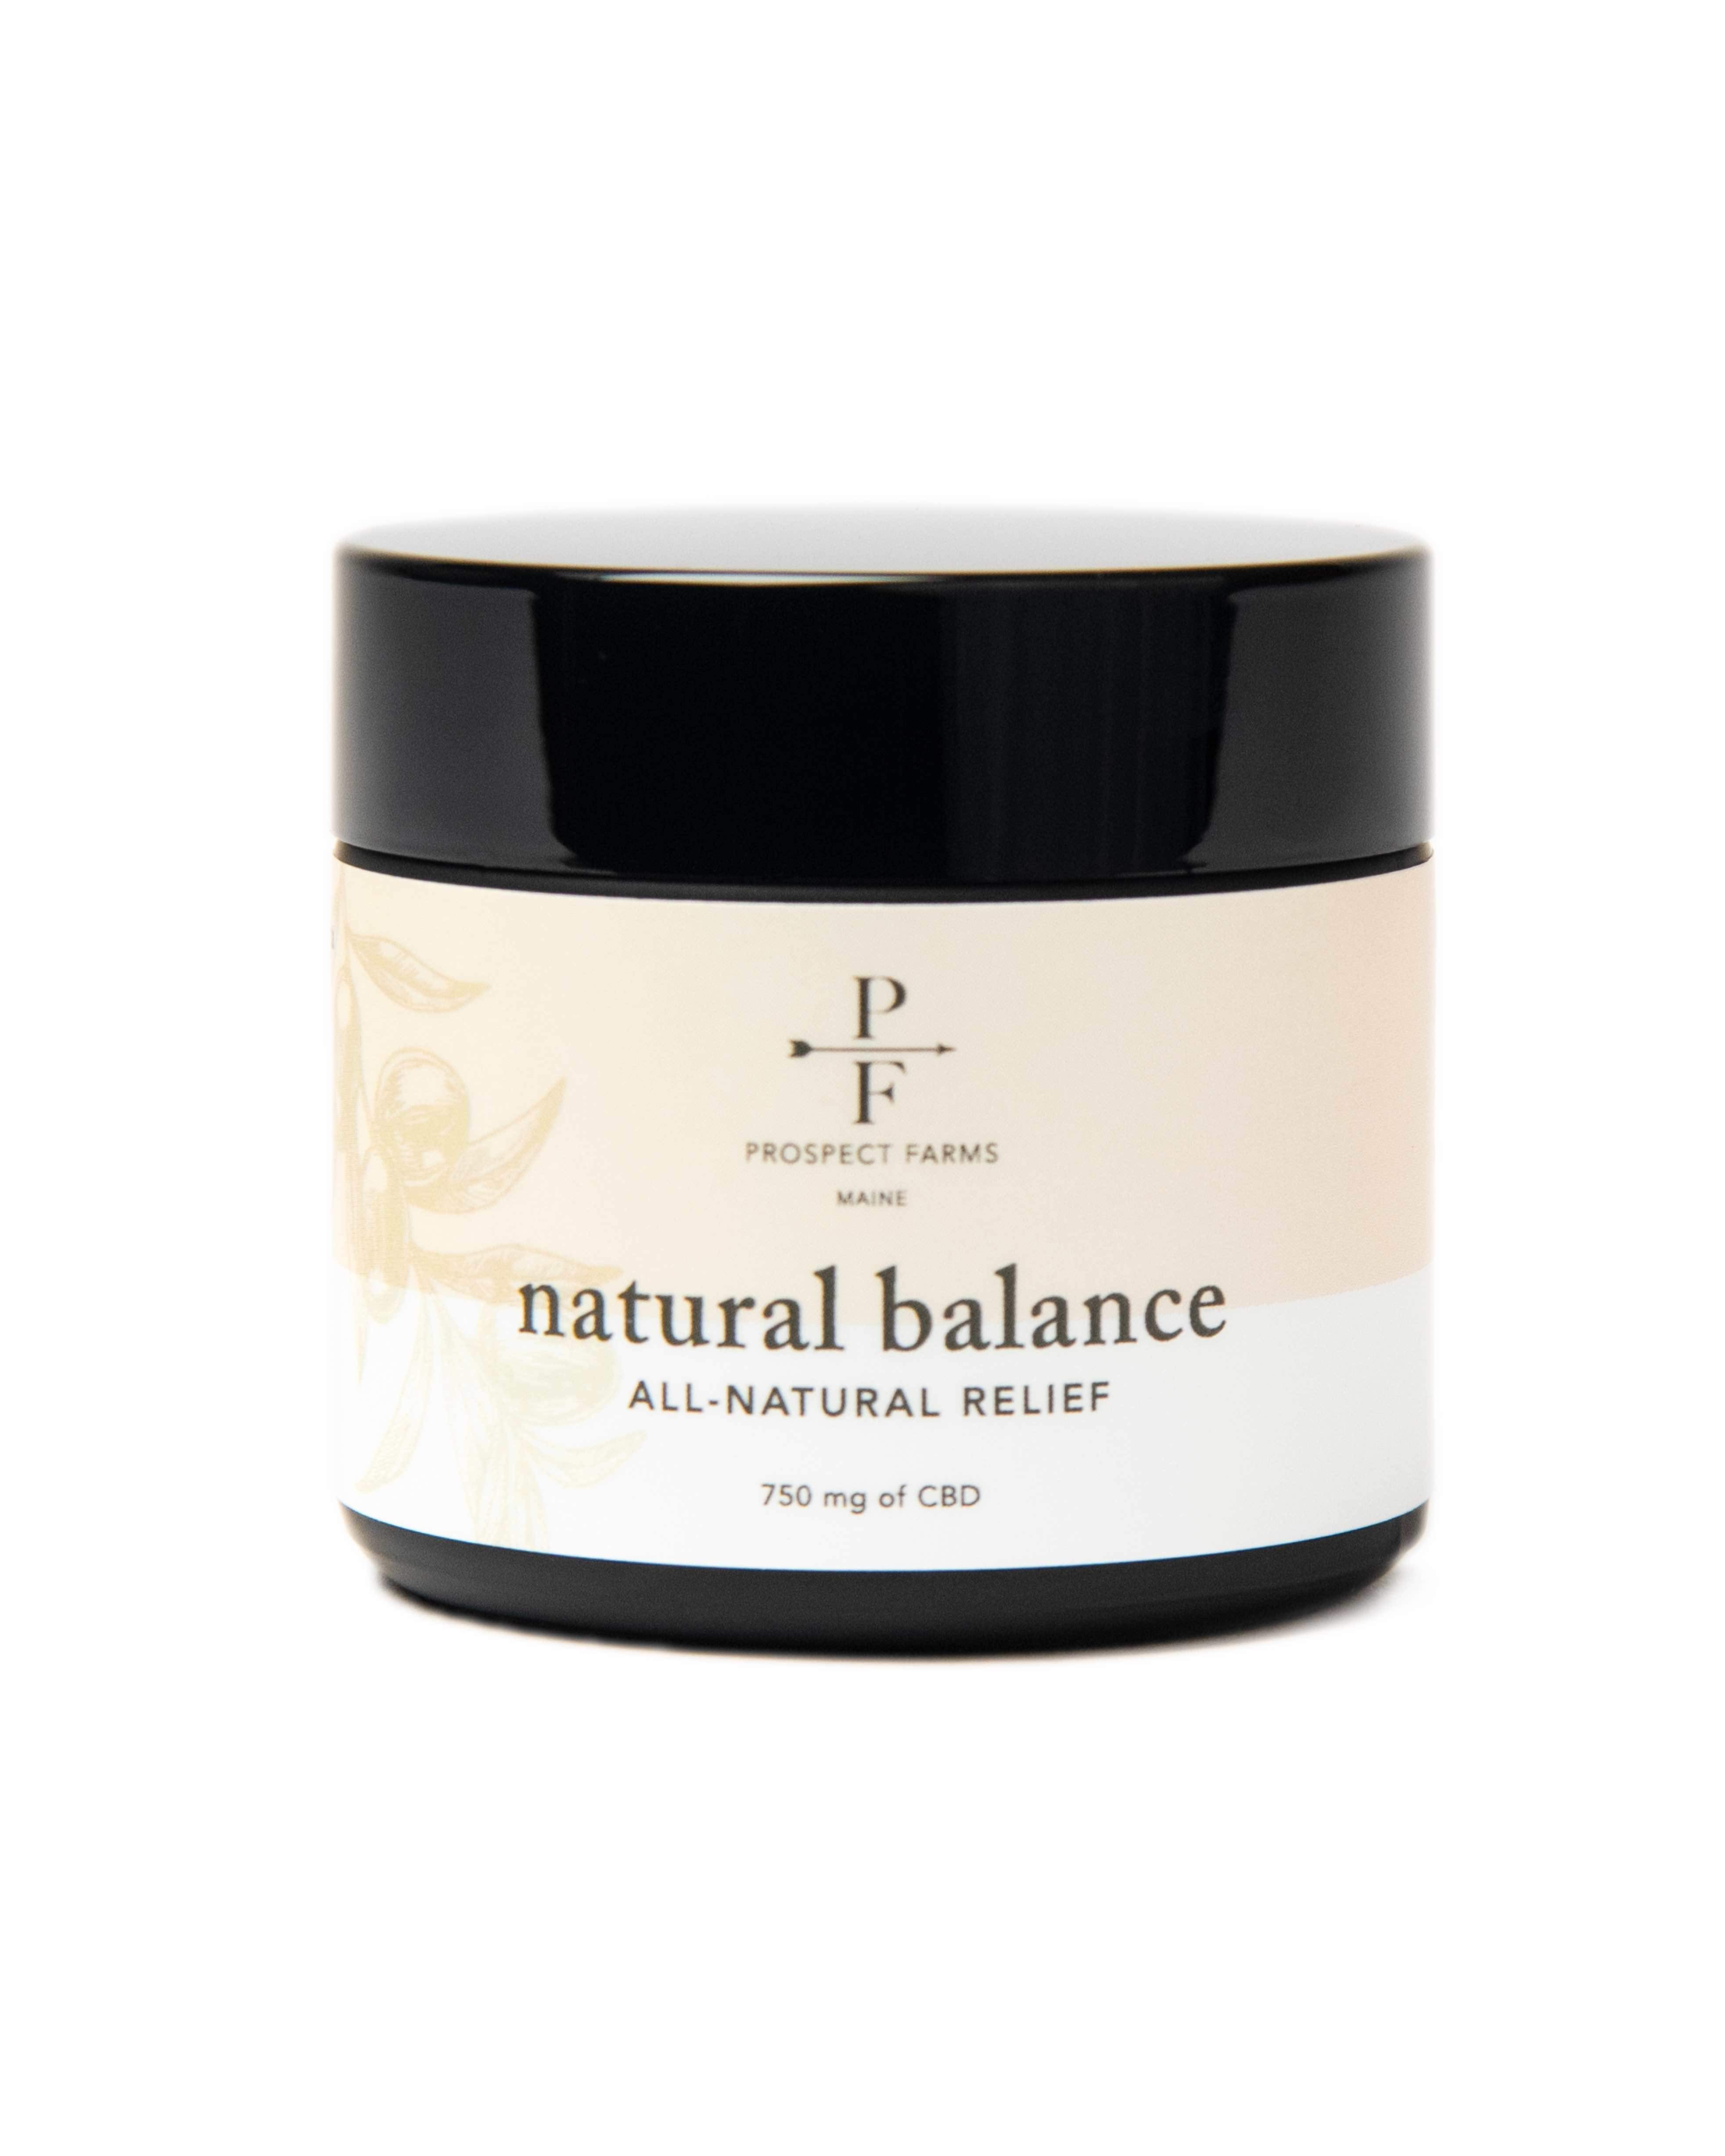 Natural Balance Topical—All-Natural Relief